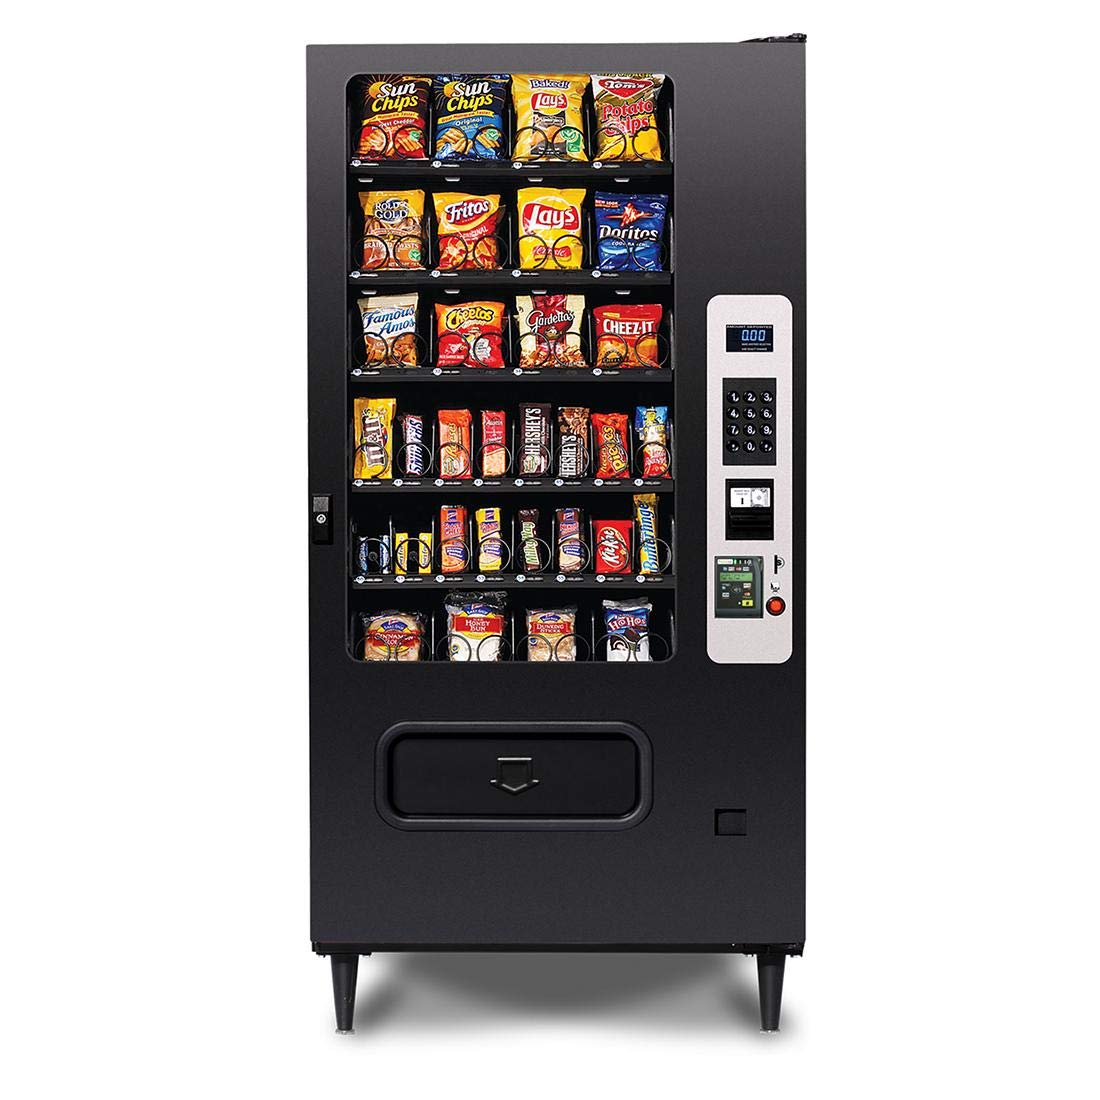 Selectivend SV-4 32-Selection Snack Vending with Machine Super Special SALE held Credit New arrival